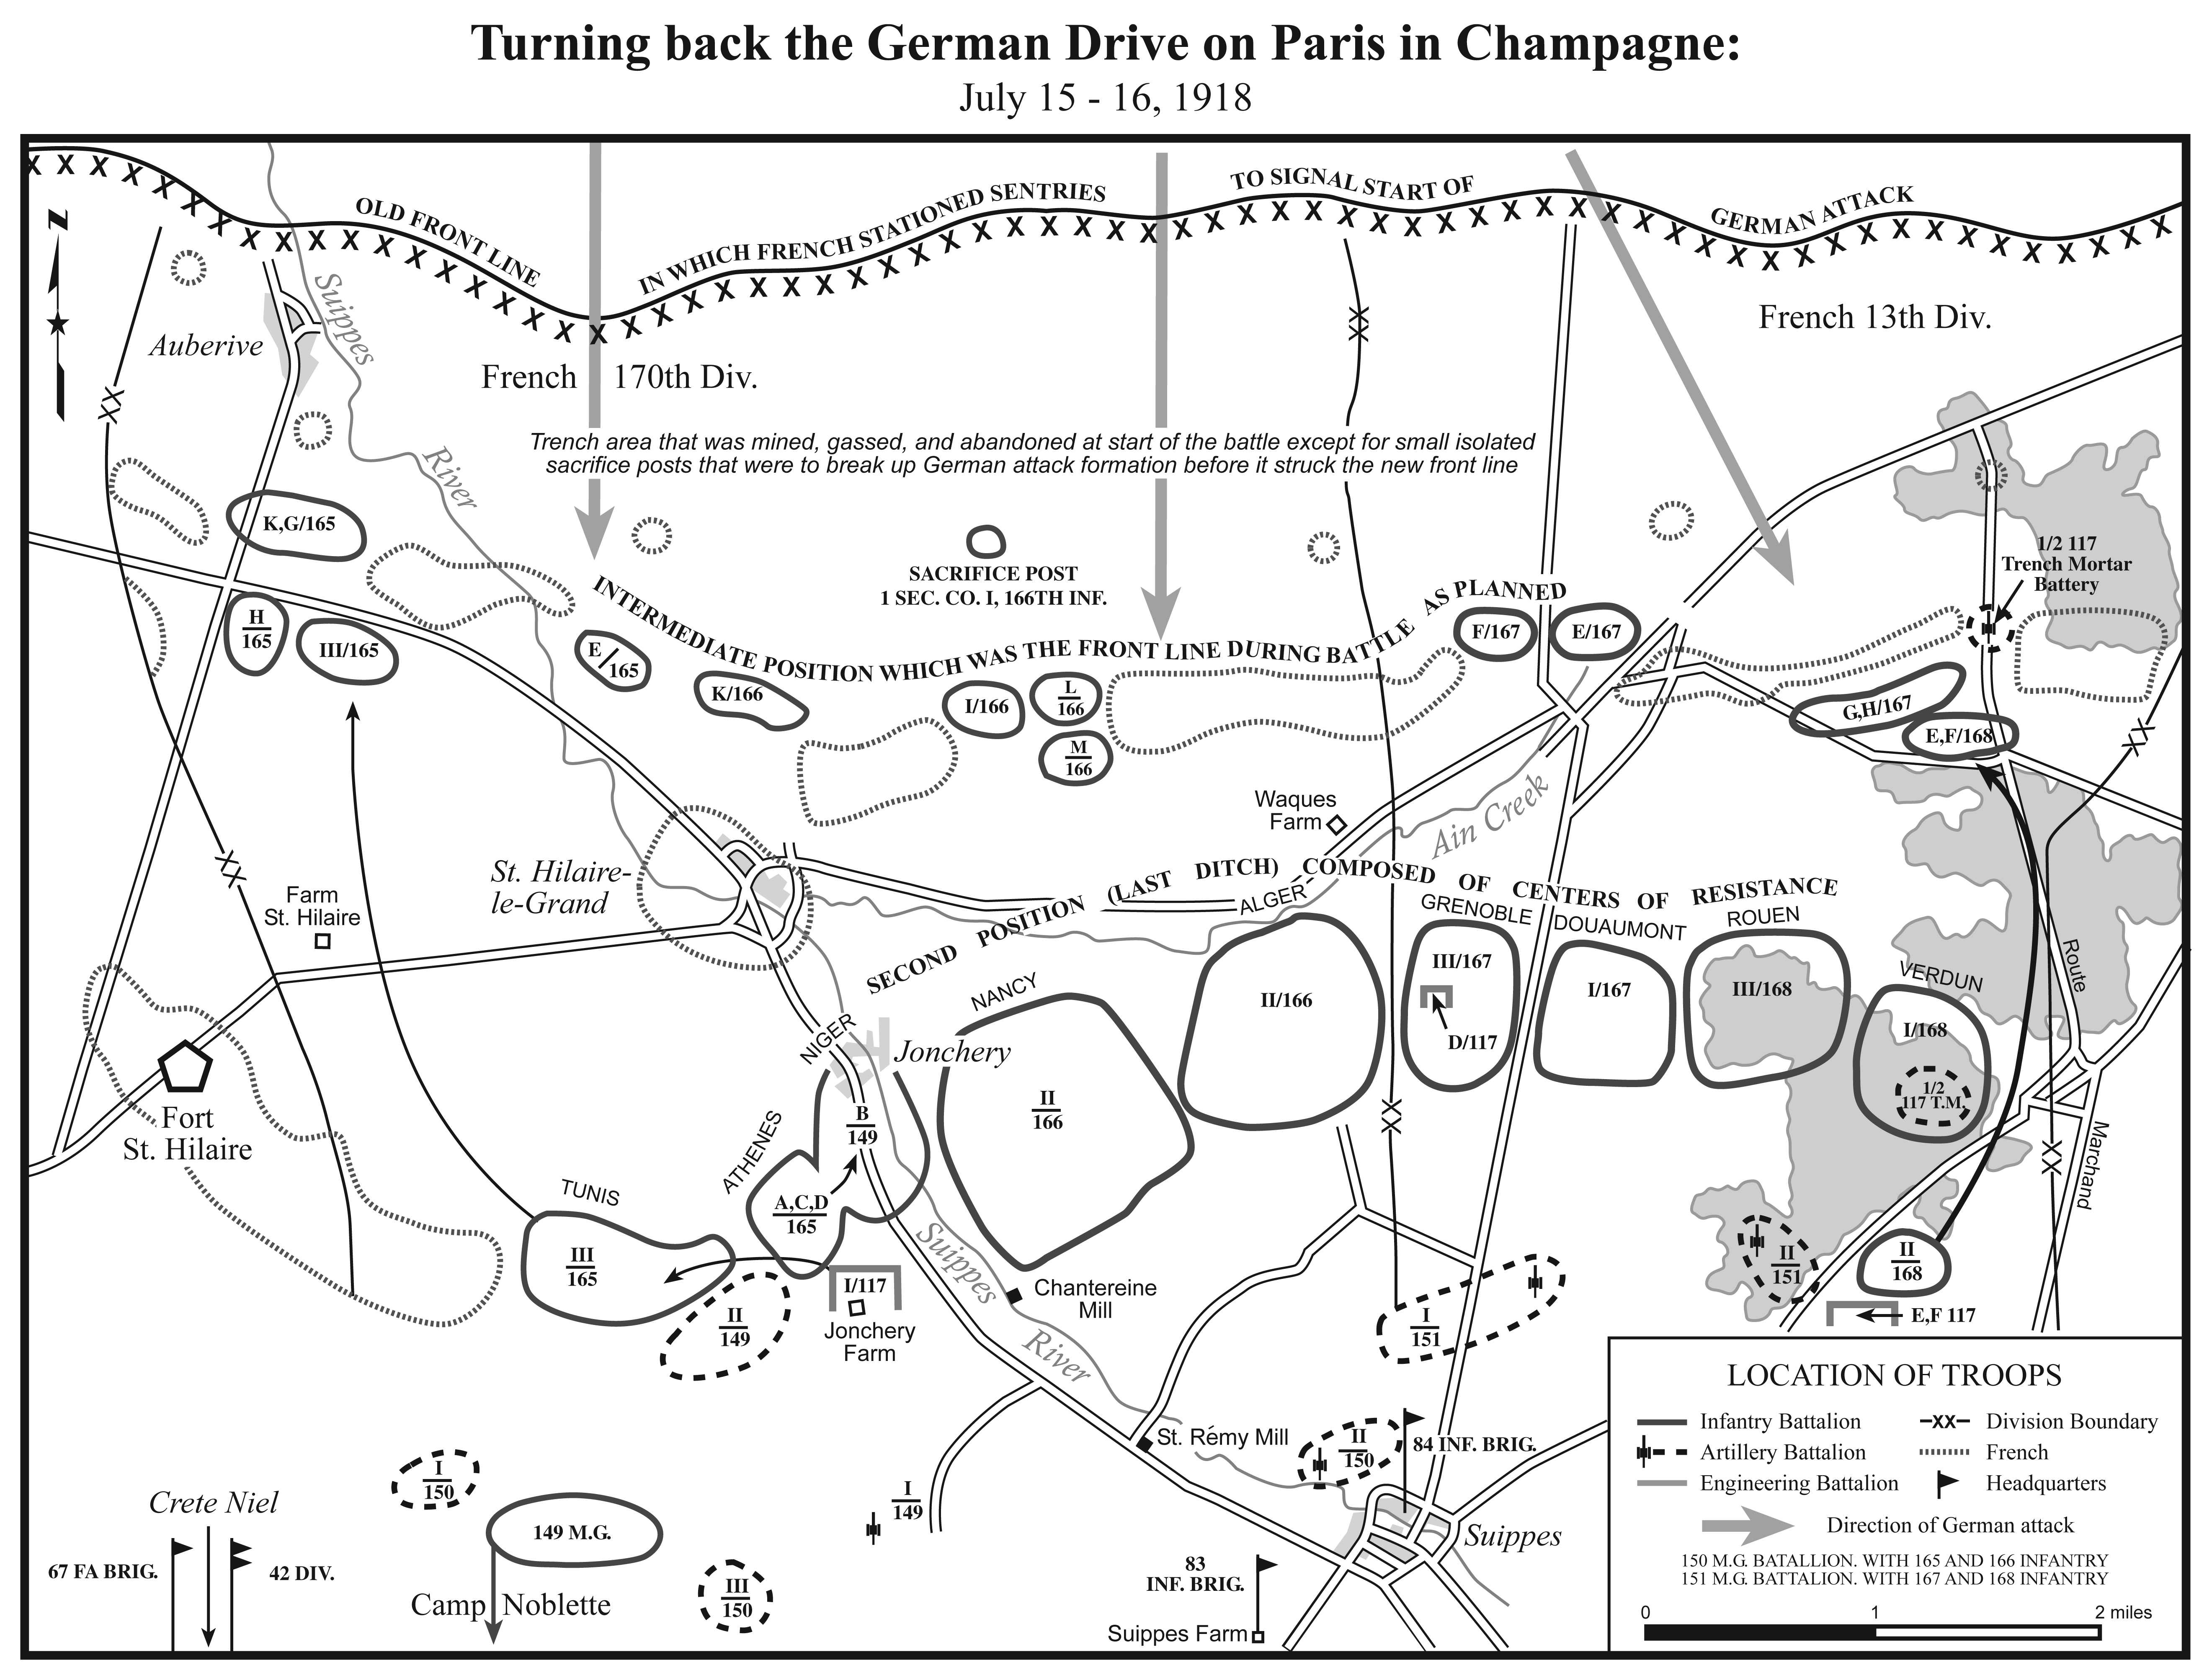 II.2. Turning the German Drive on Paris in Champagne.